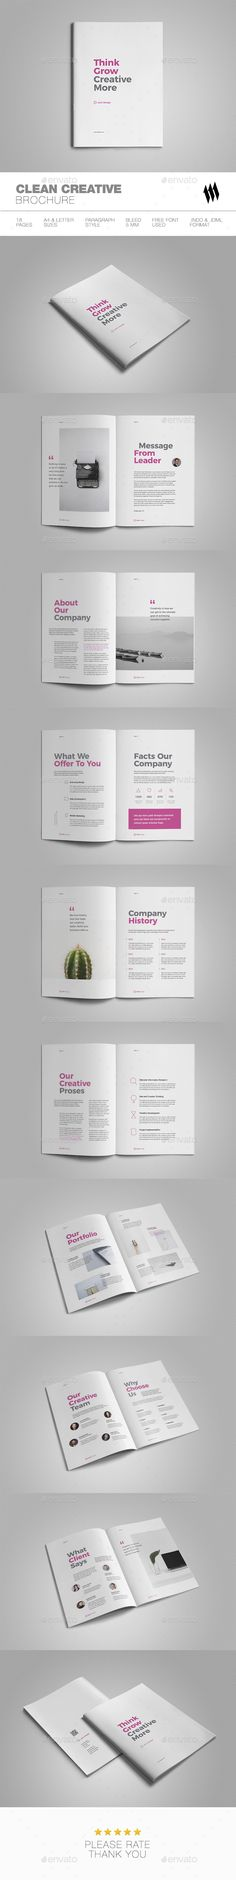 Clean Creative Brochure Template InDesign INDD - 18 Pages, A4 and Letter Size